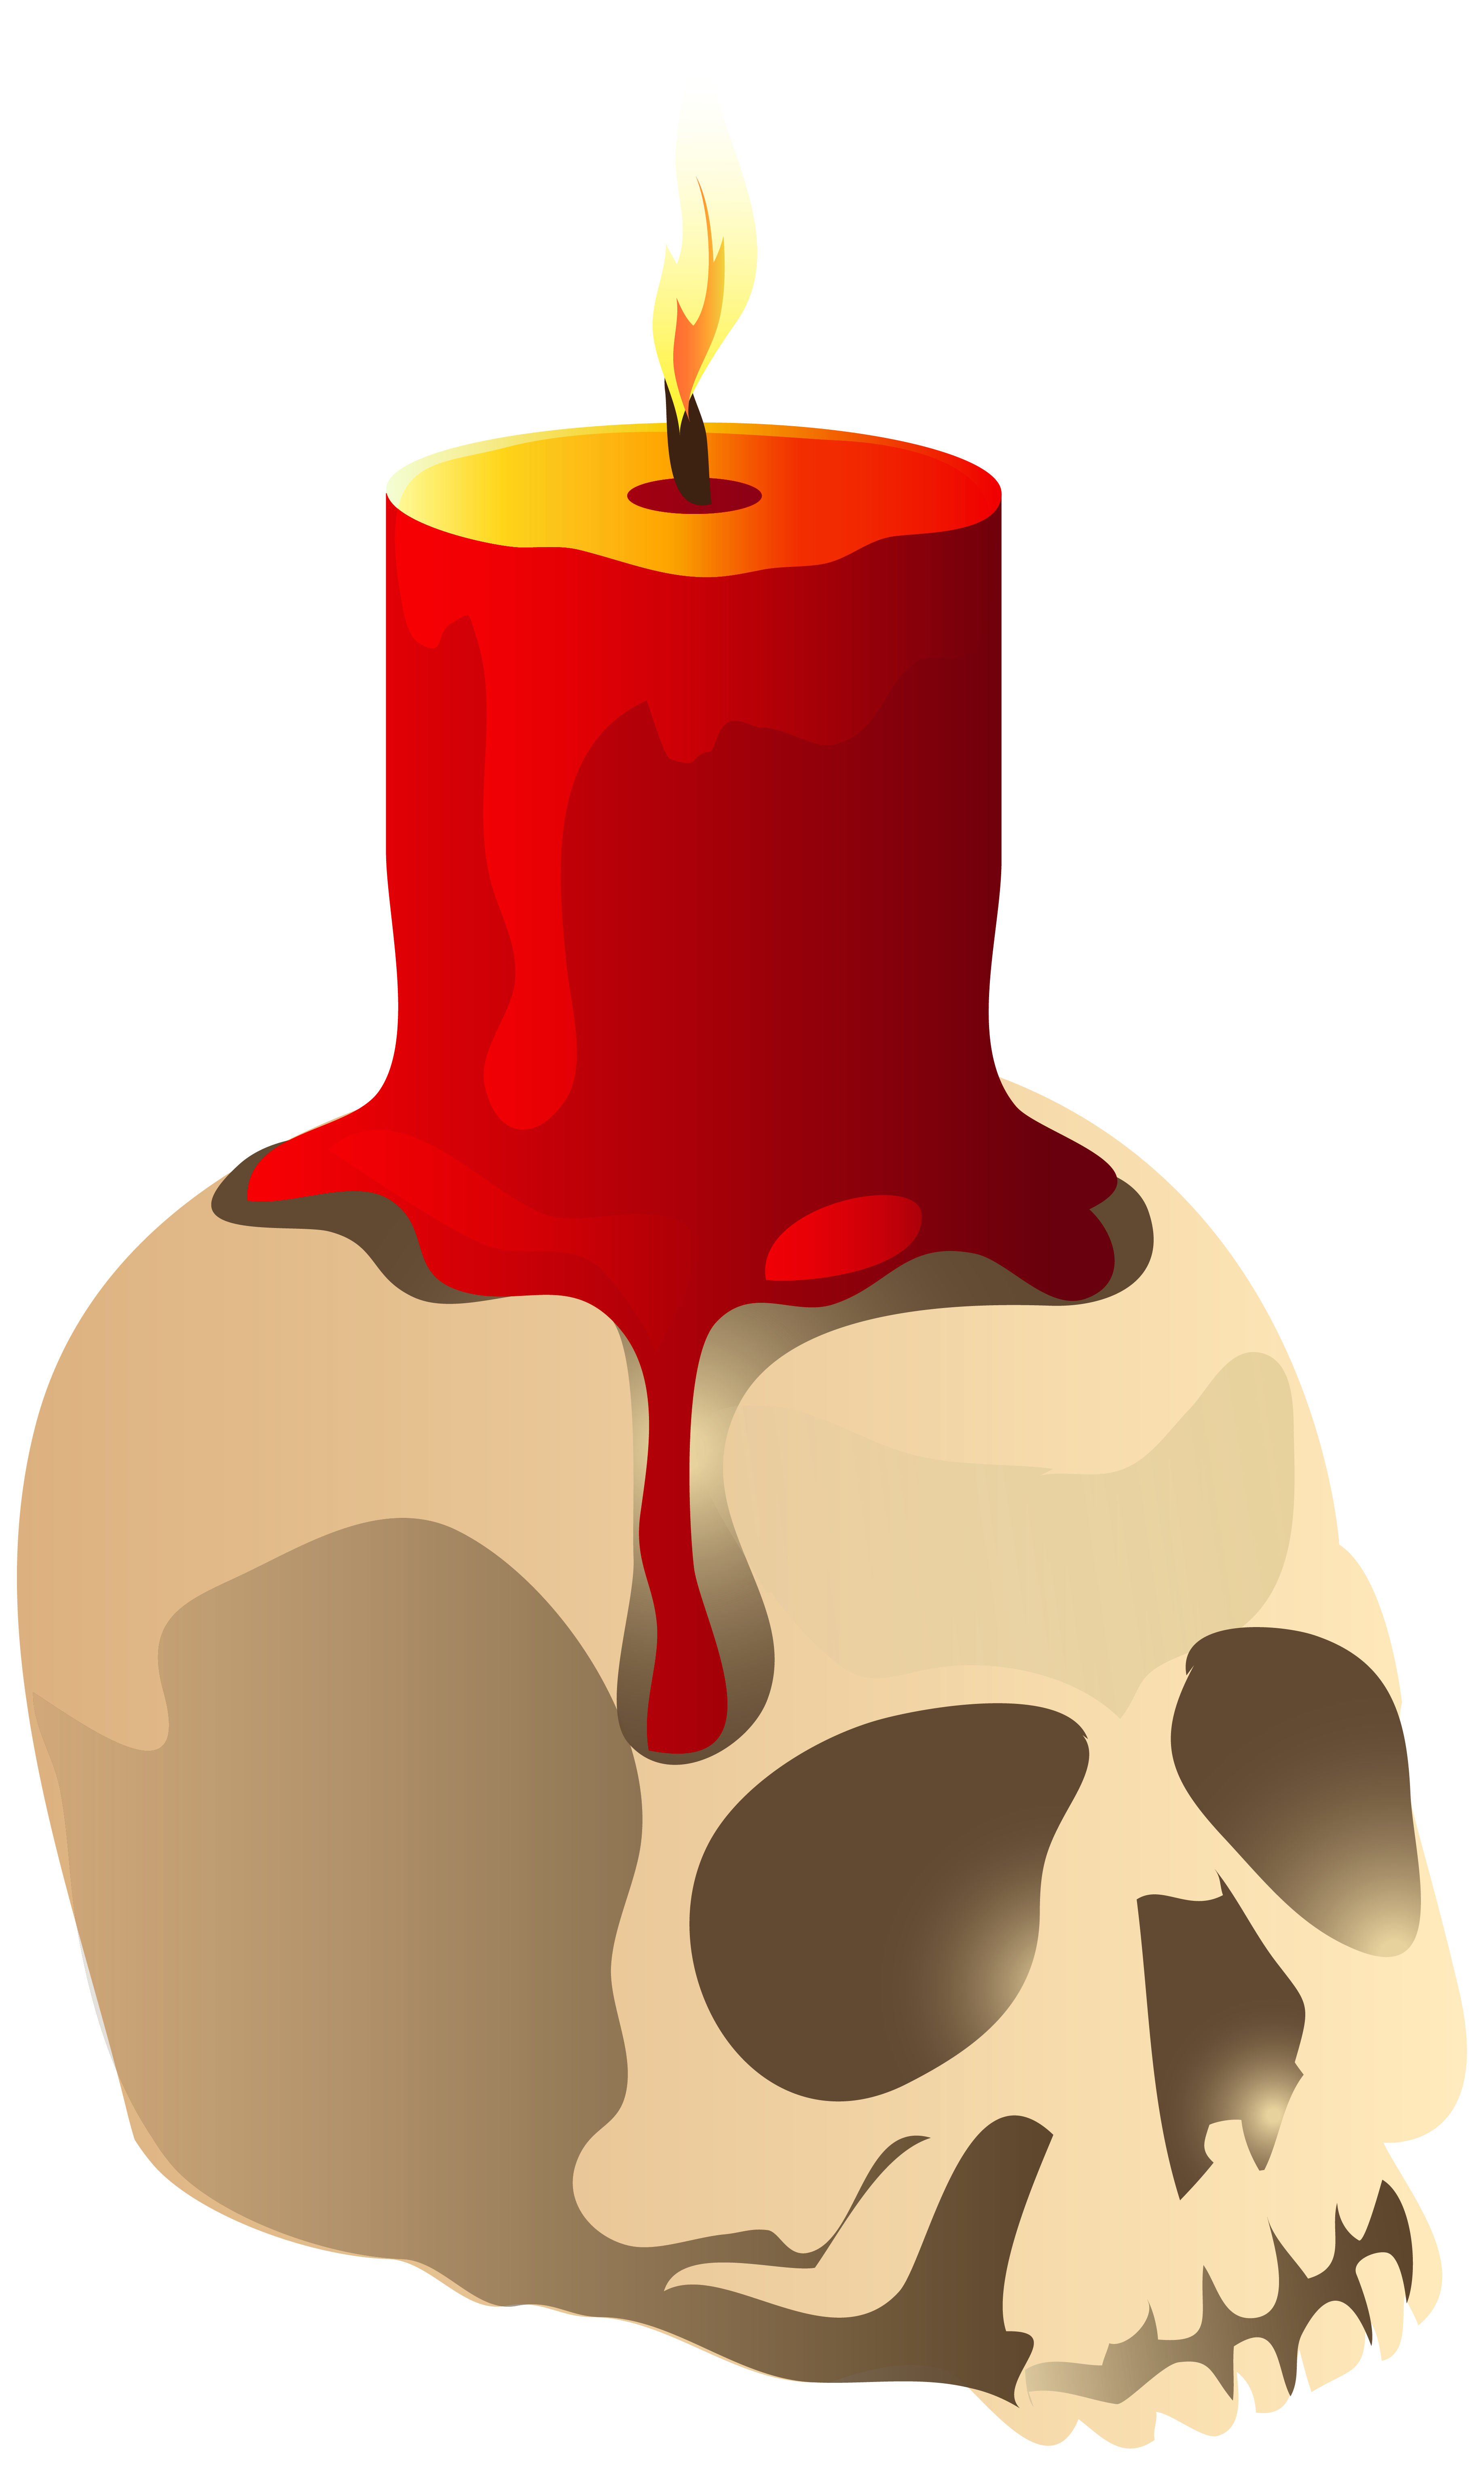 Candle png image gallery. Halloween clipart skull